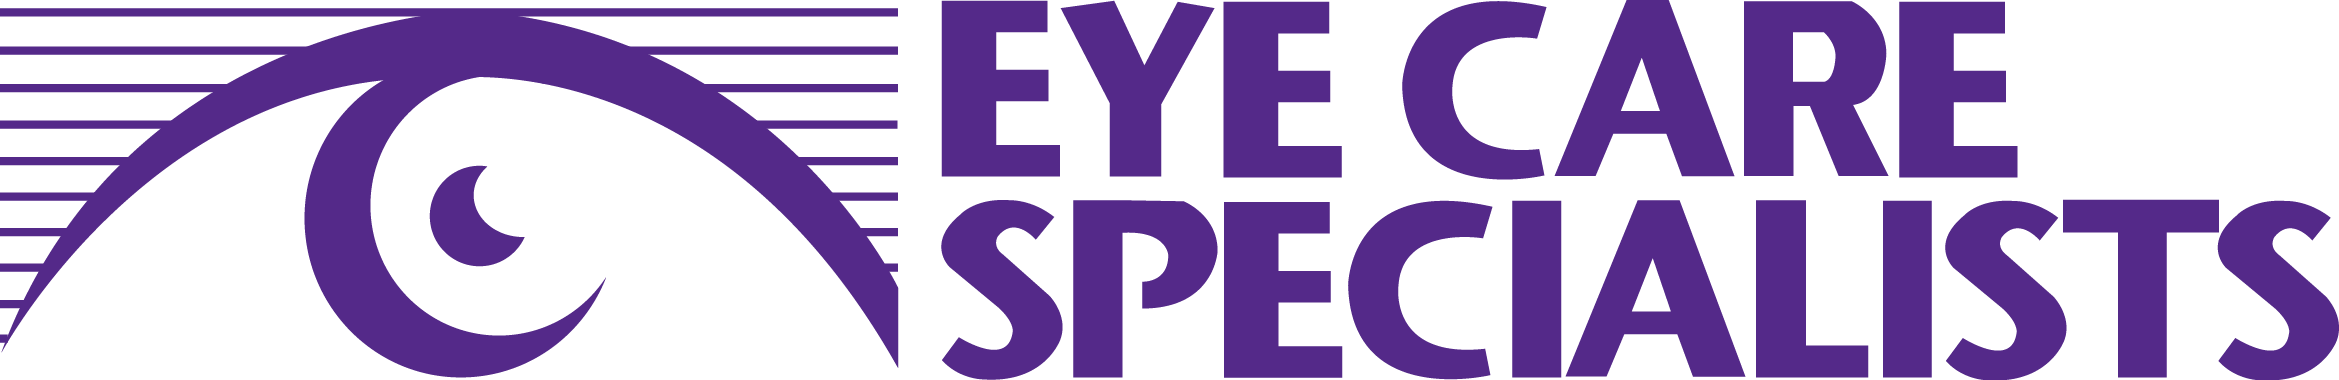 Eye Care Specialists Logo